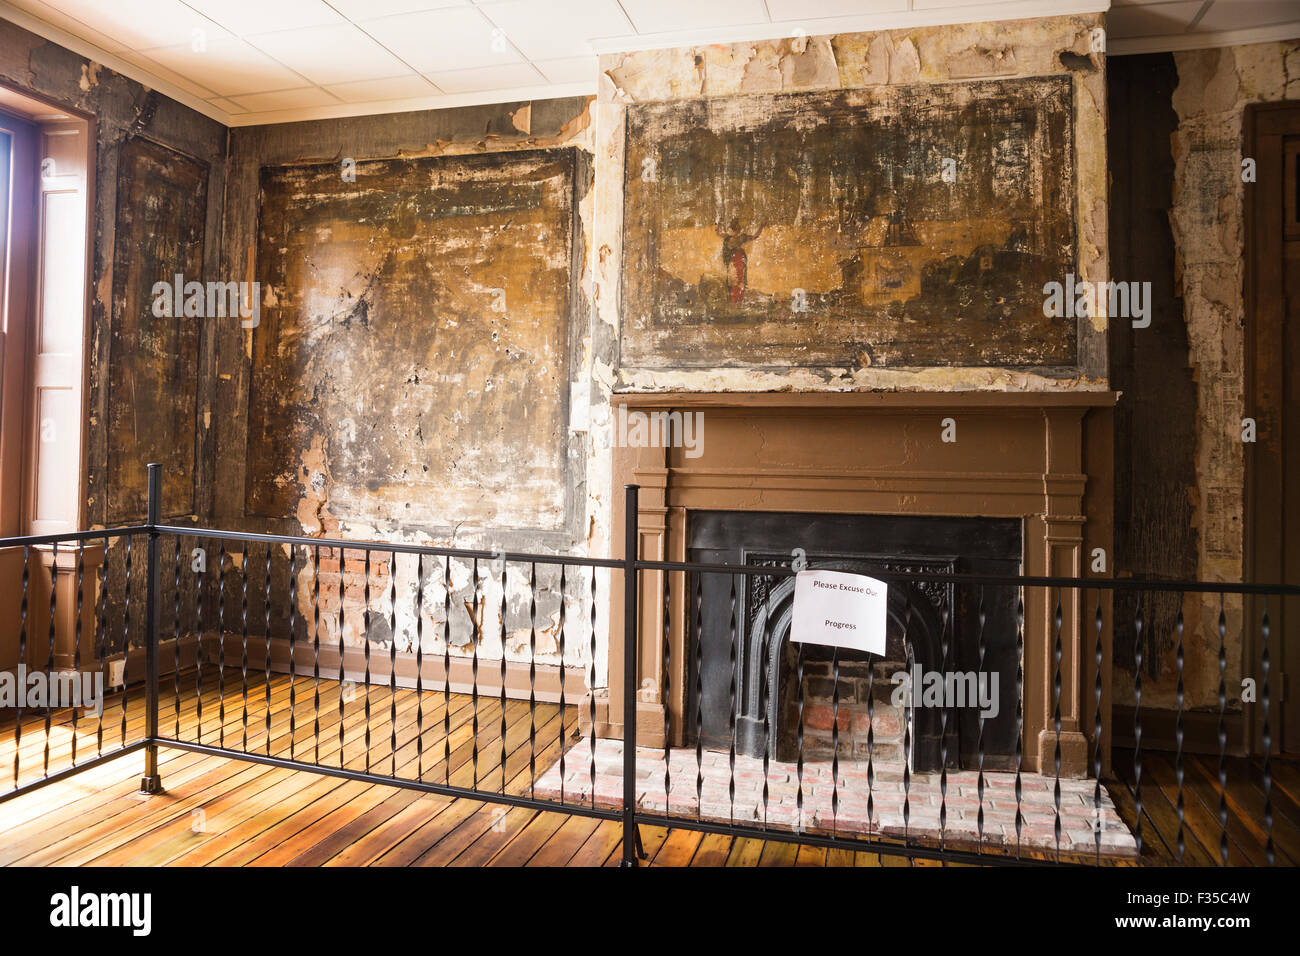 Jesse James slept in this room and left bullet holes in the plastered wall mural which has faded over time, Bardstown, - Stock Image